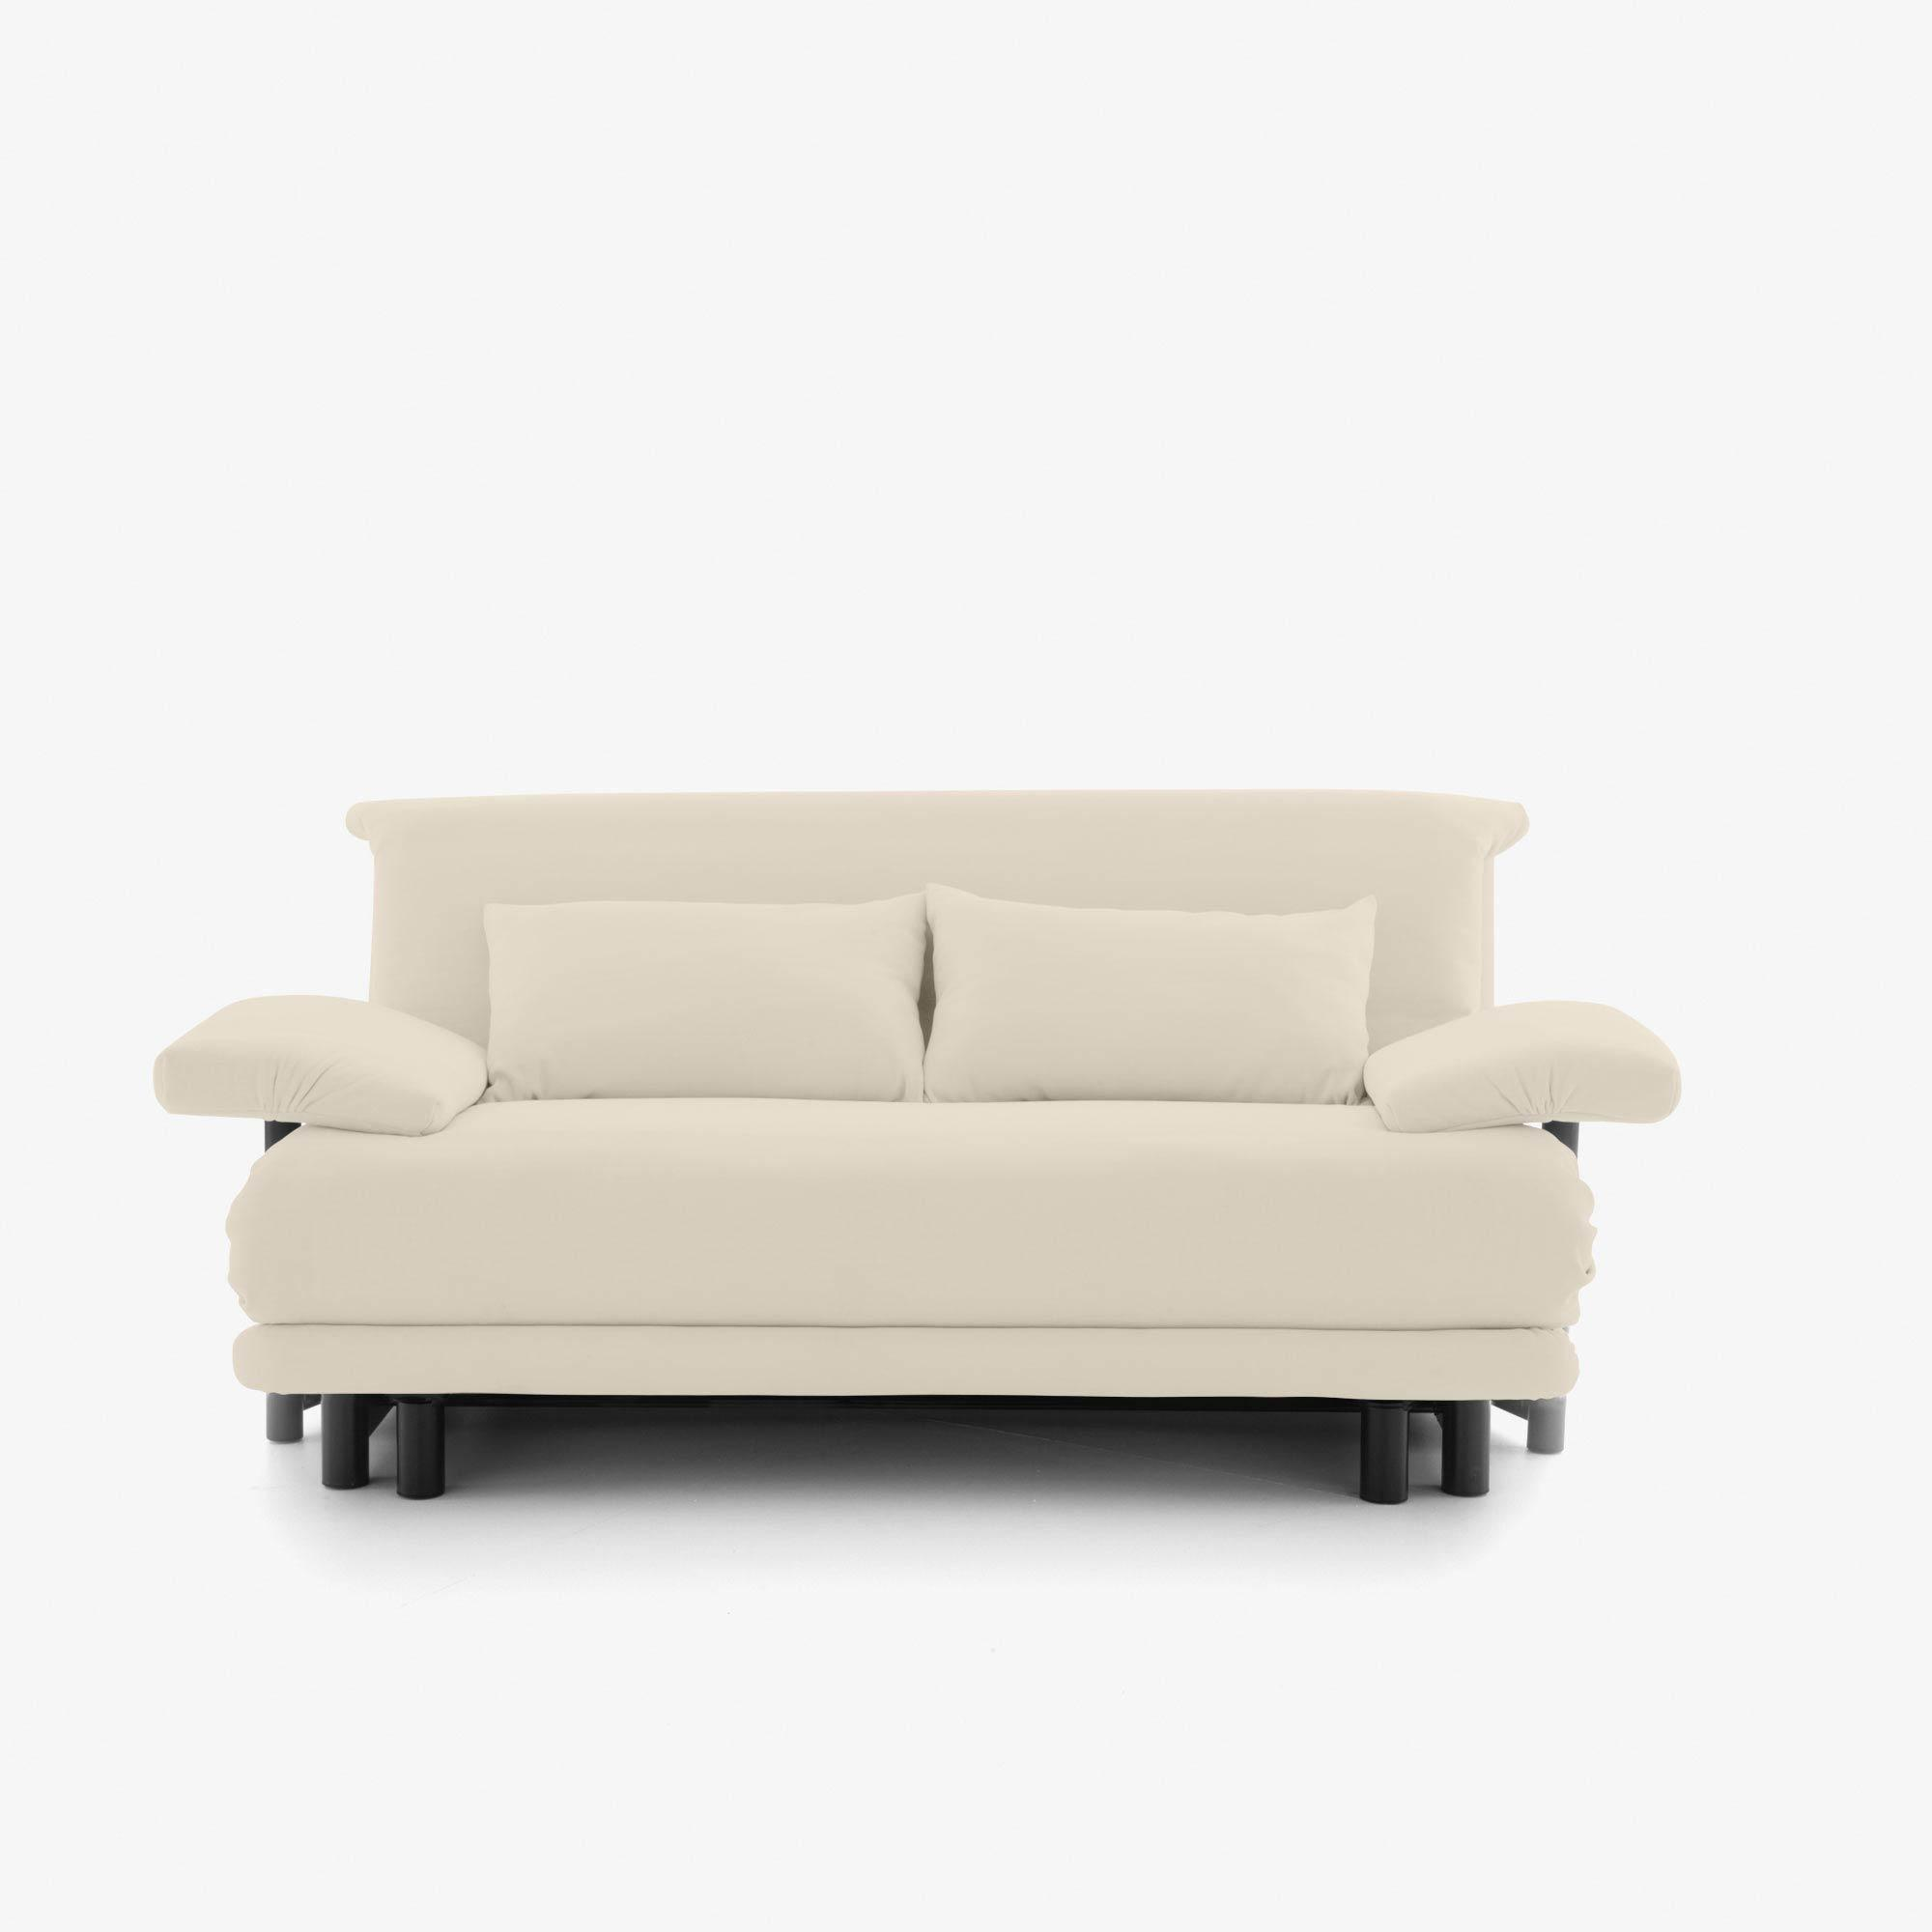 SOFABED 61